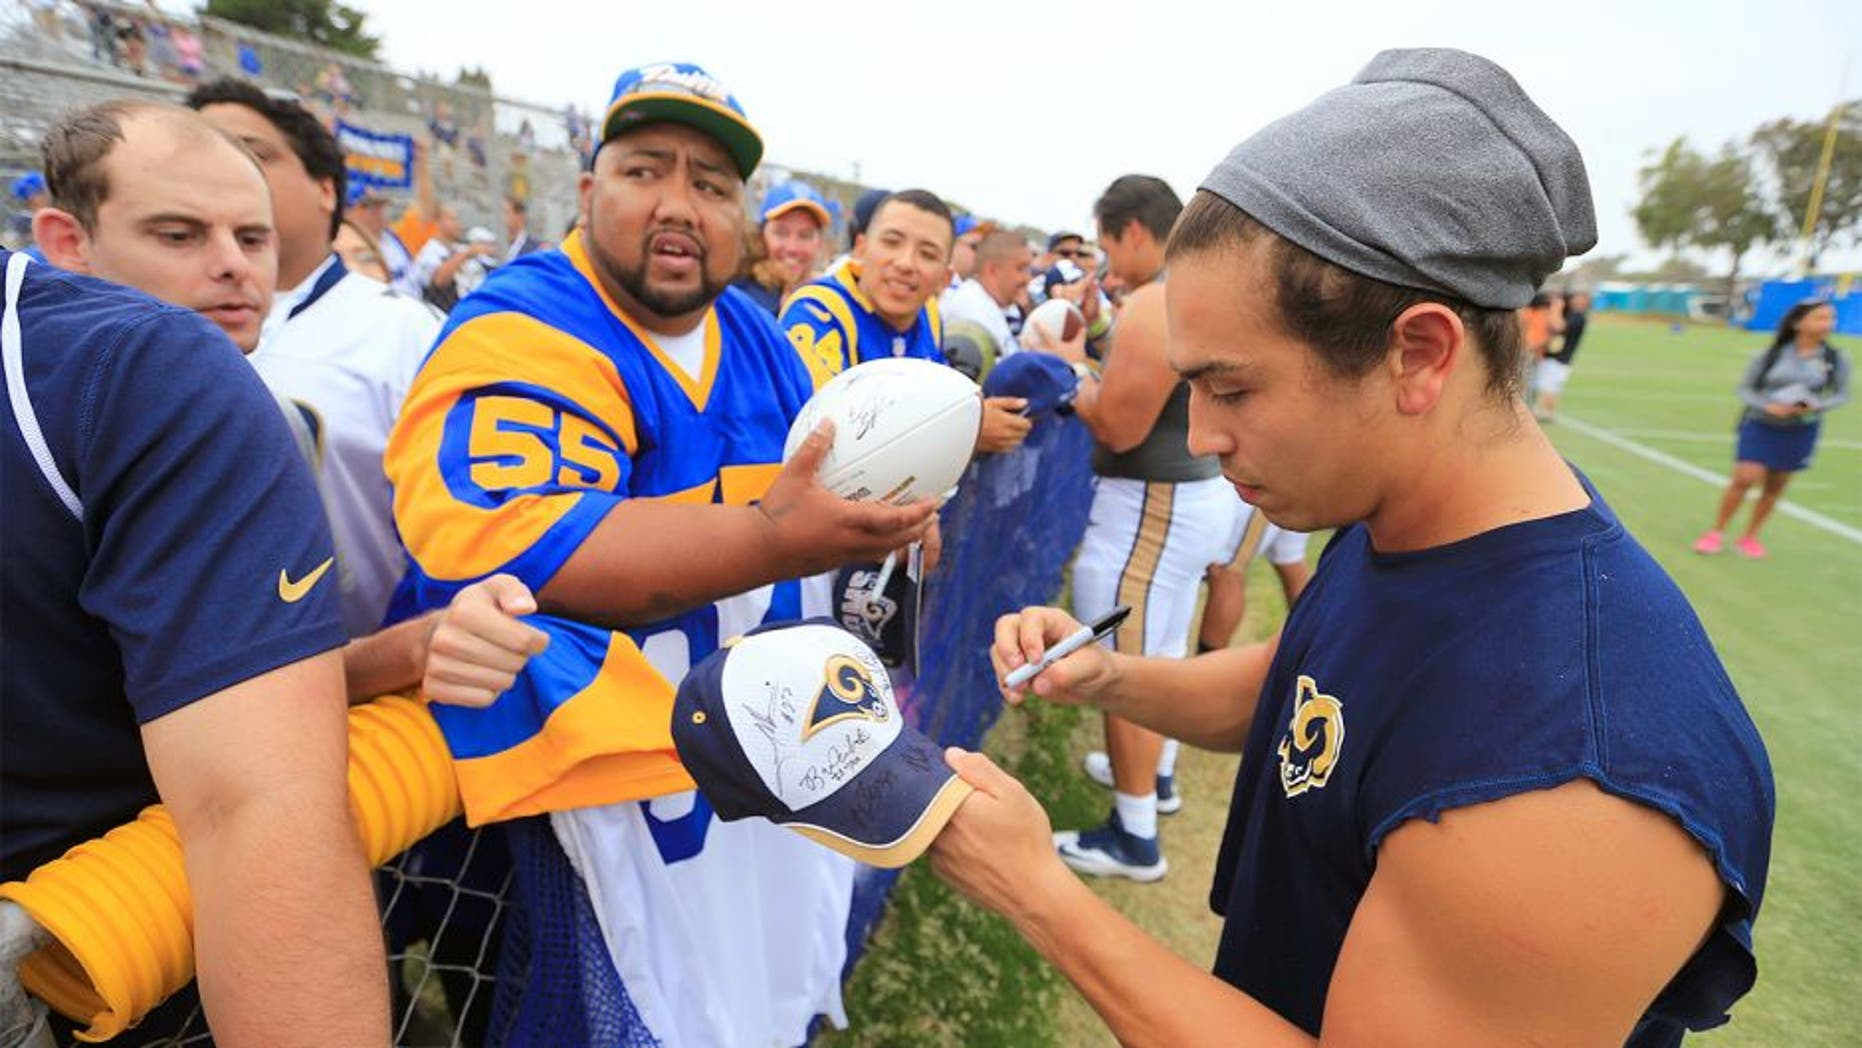 OXNARD, CALIF. -- MONDAY, AUGUST 17, 2015: St. Louis Rams wide receiver and U.S. Army veteran Daniel Rodriguez signs autographs for hopeful Los Angeles Rams fans following the St. Louis Rams-Dallas Cowboys NFL scrimmage at training camp in Oxnard Monday, Aug. 17, 2015. The Dallas Cowboys scrimmaged against the St. Louis Rams. The Rams are making an appearance in Southern California now that they're trying to possibly move back. Photo taken in Oxnard, Calif., on Aug. 17, 2015. (Allen J. Schaben / Los Angeles Times)